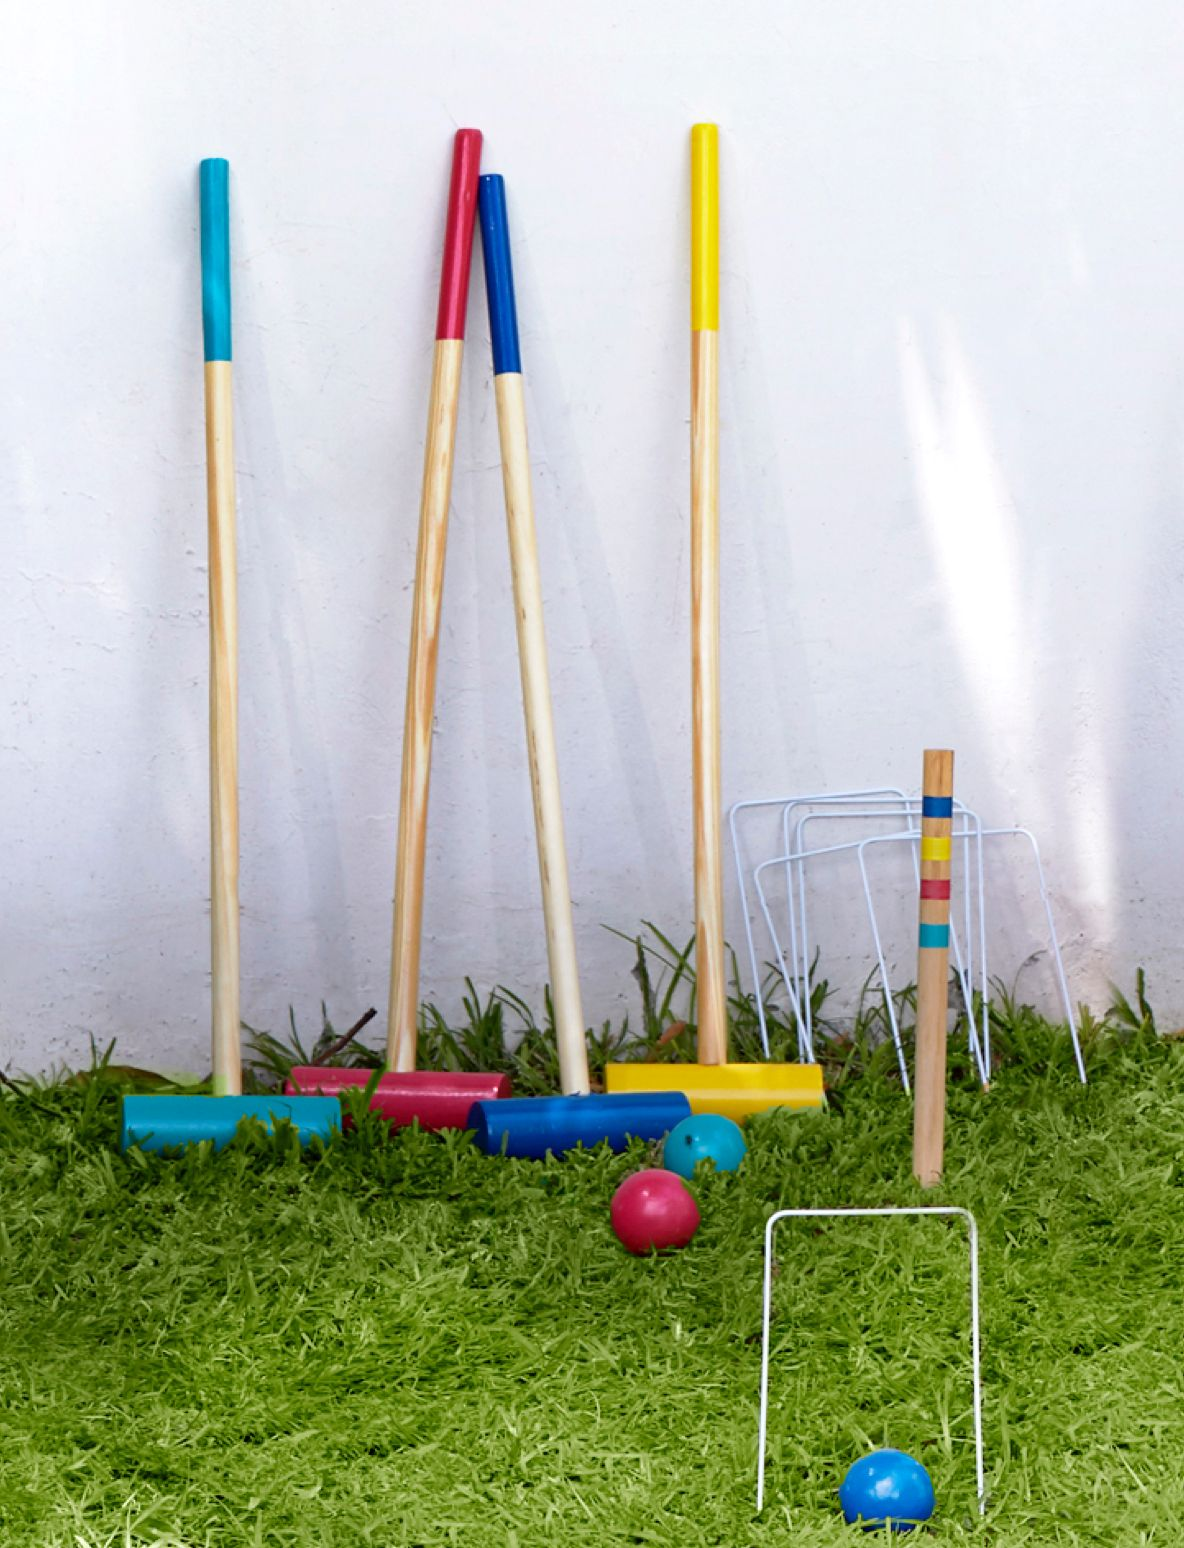 Games for the garden on a patch of grass